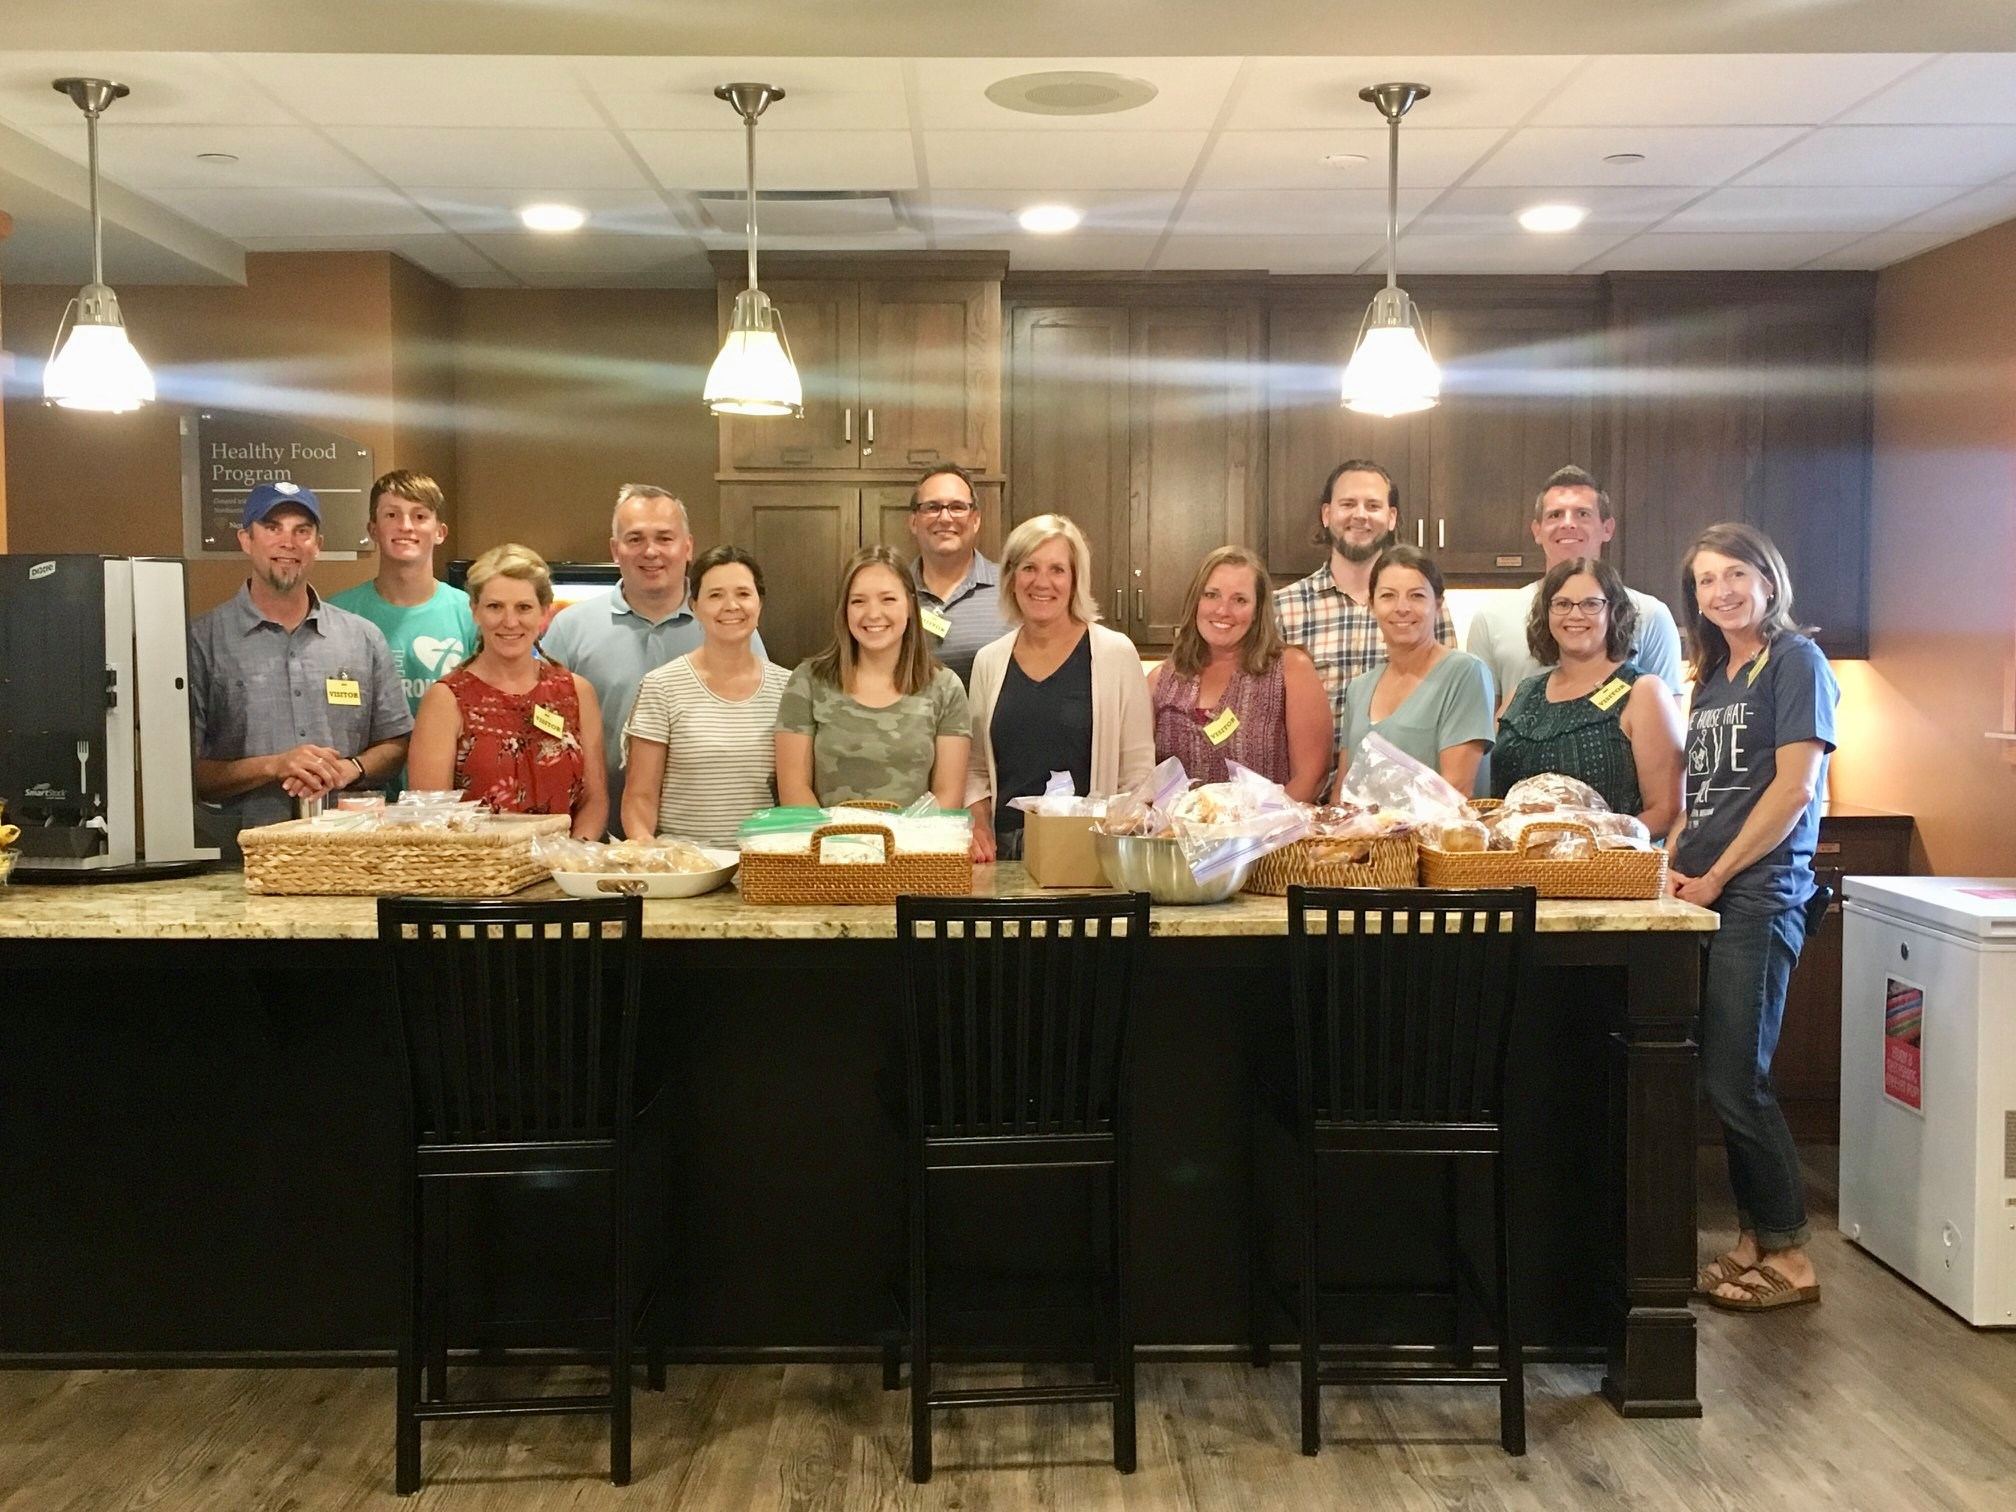 Ronald McDonald House - June 30, 2019